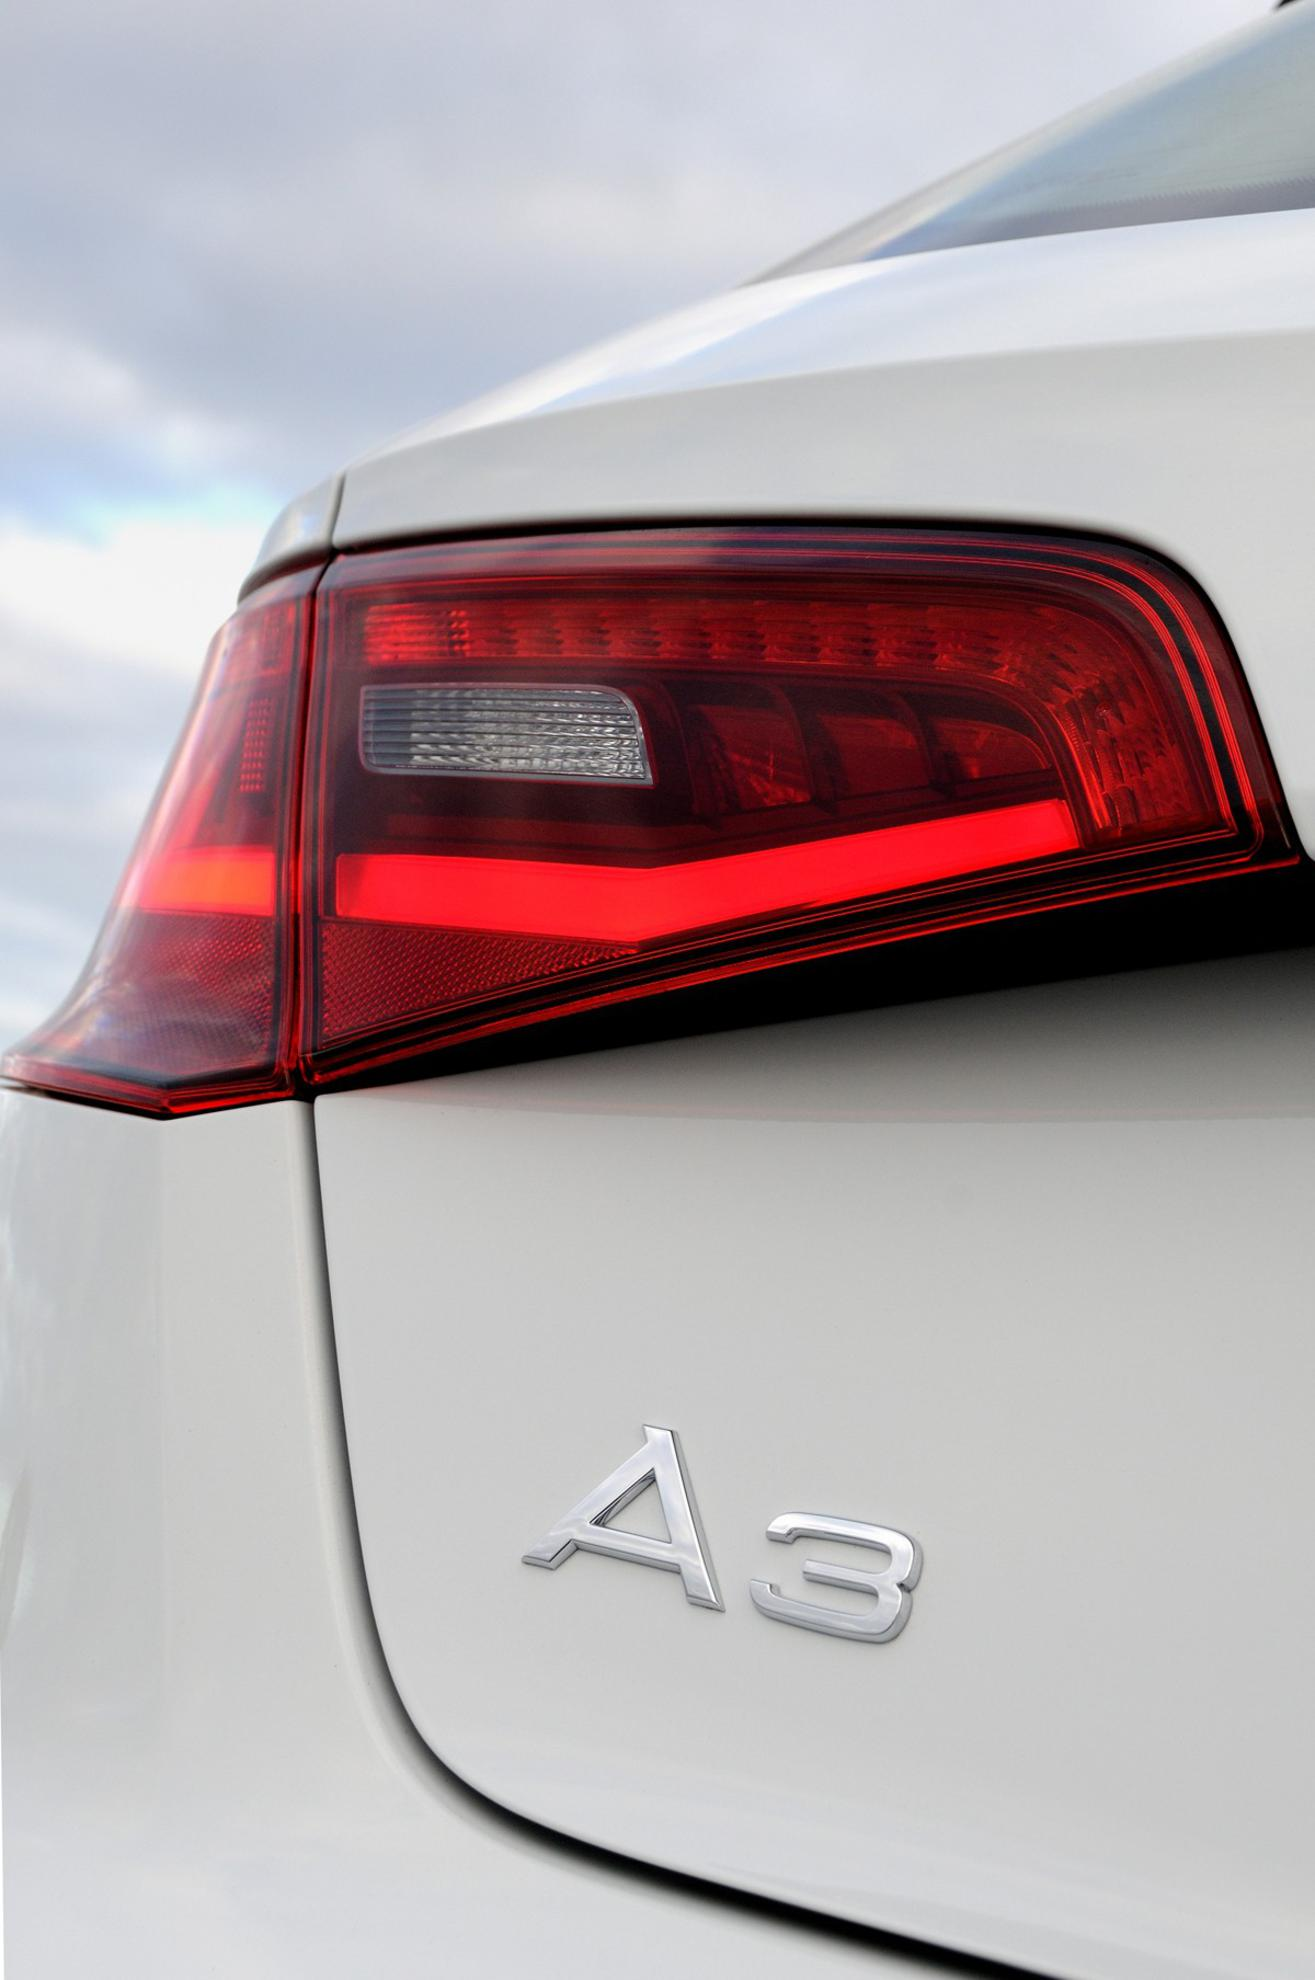 Audi A3 Sportback Rear Lights and Logo - 3D Car Shows